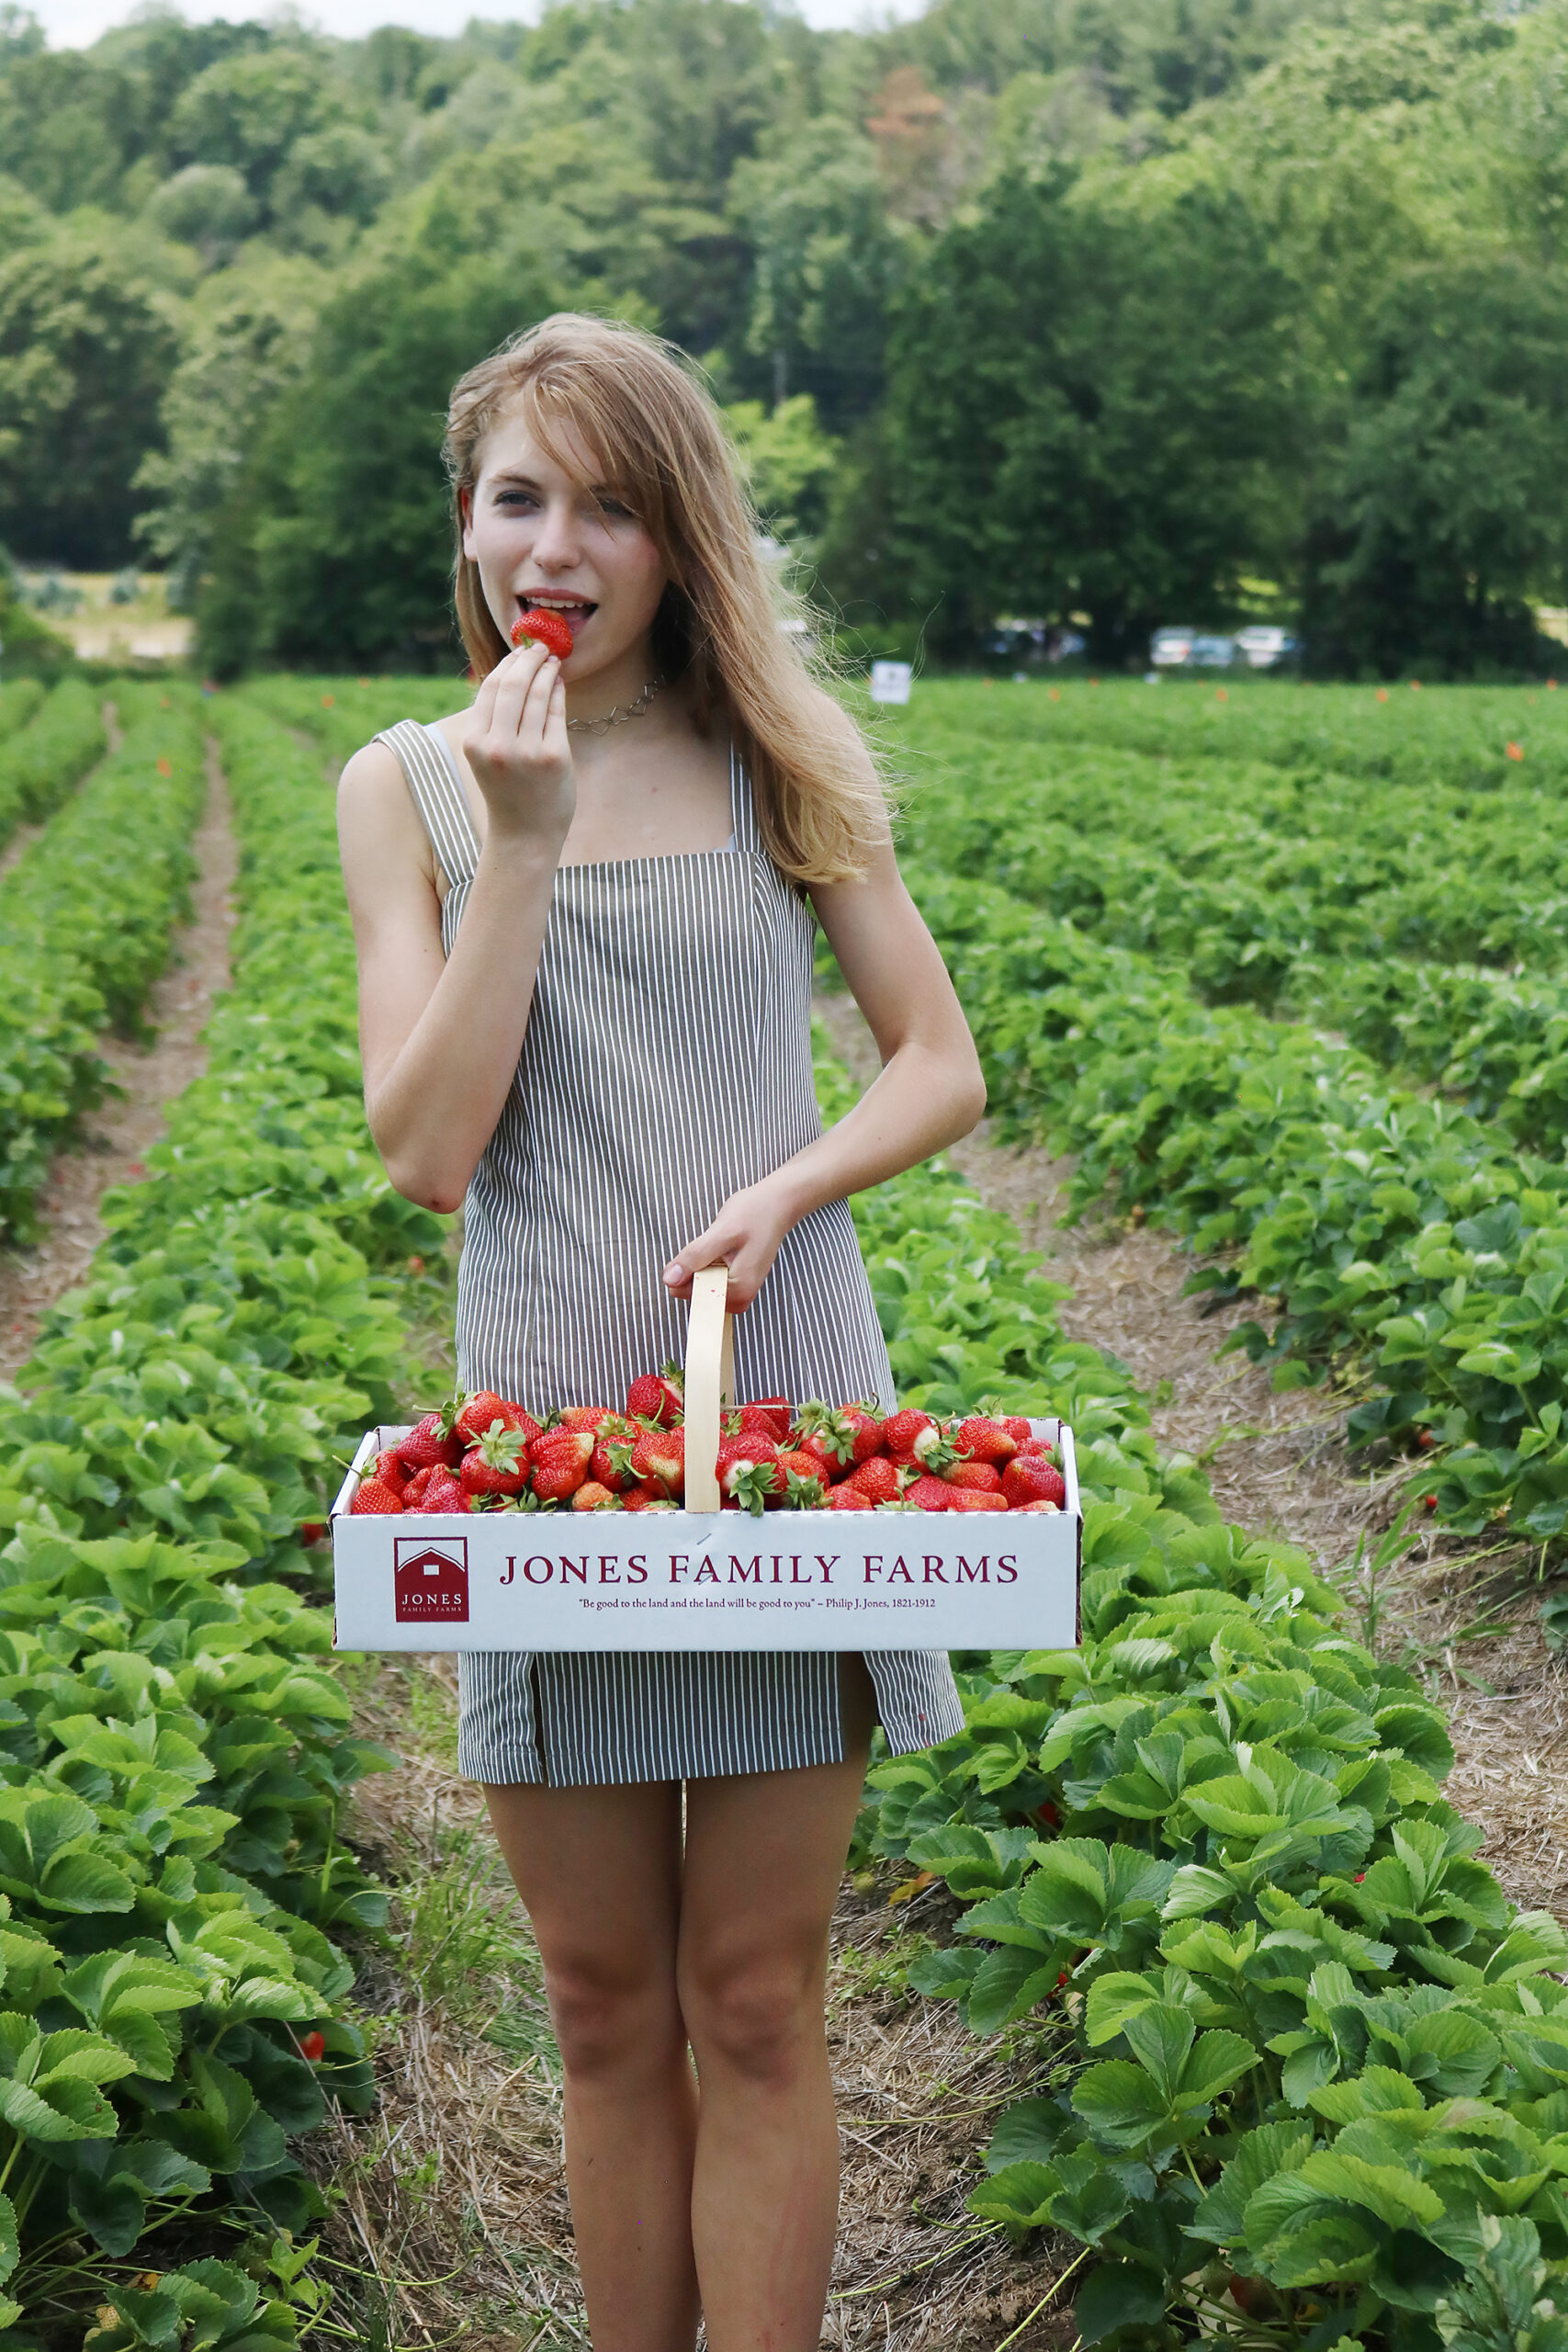 Strawberry picking, strawberry fields forever, jones family farms, connecticut strawberry picking, strawberry picking with children    Darling Darleen Top Lifestyle CT Blogger #strawberryfields